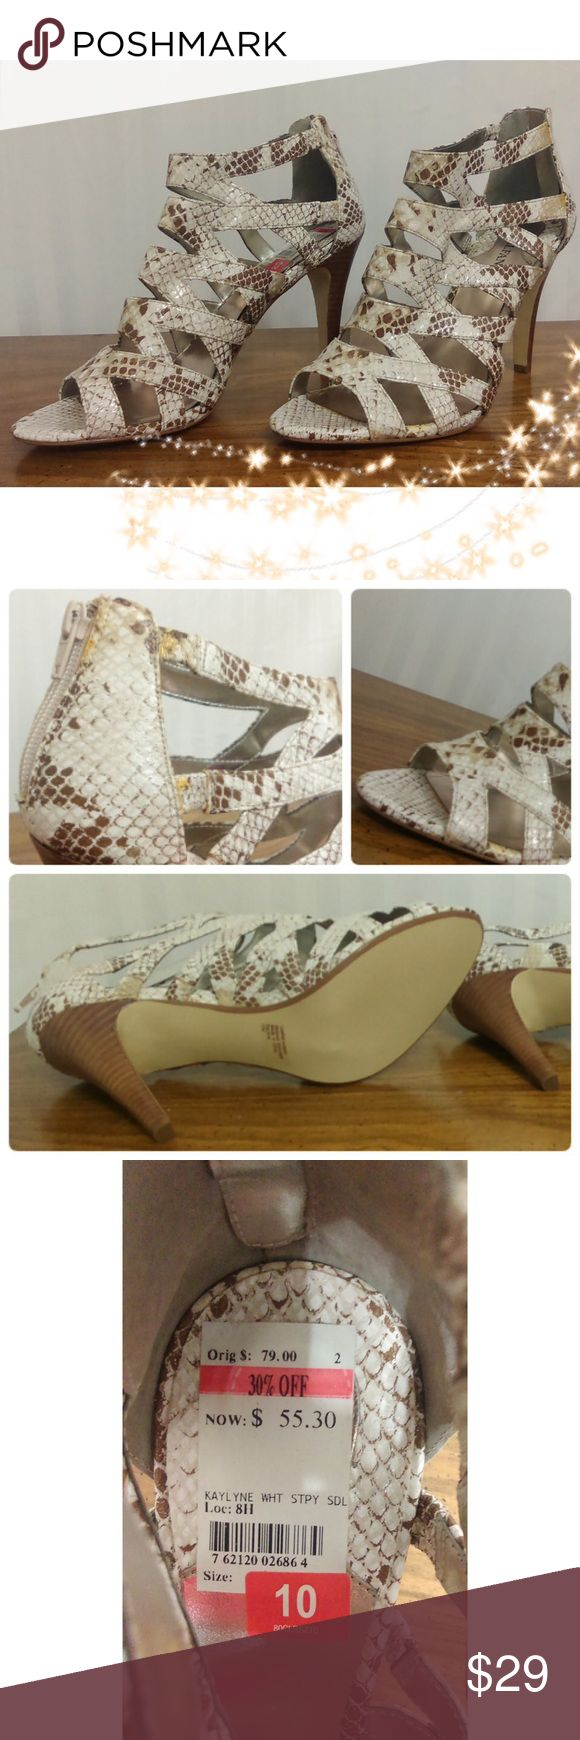 New Alfani Animal Print High Heels Gorgeous Alfani Animal Print White & Brown High Heels. Measurements: 4.5 inches Heel Width: Medium Material: Leather I bought them but never worn them. Beautiful Heels! (Do not include original box).   🛍10% OFF 2+ Bundle! 📦I ship same or next day! 🚭From a smoke free home. Alfani Shoes Heels